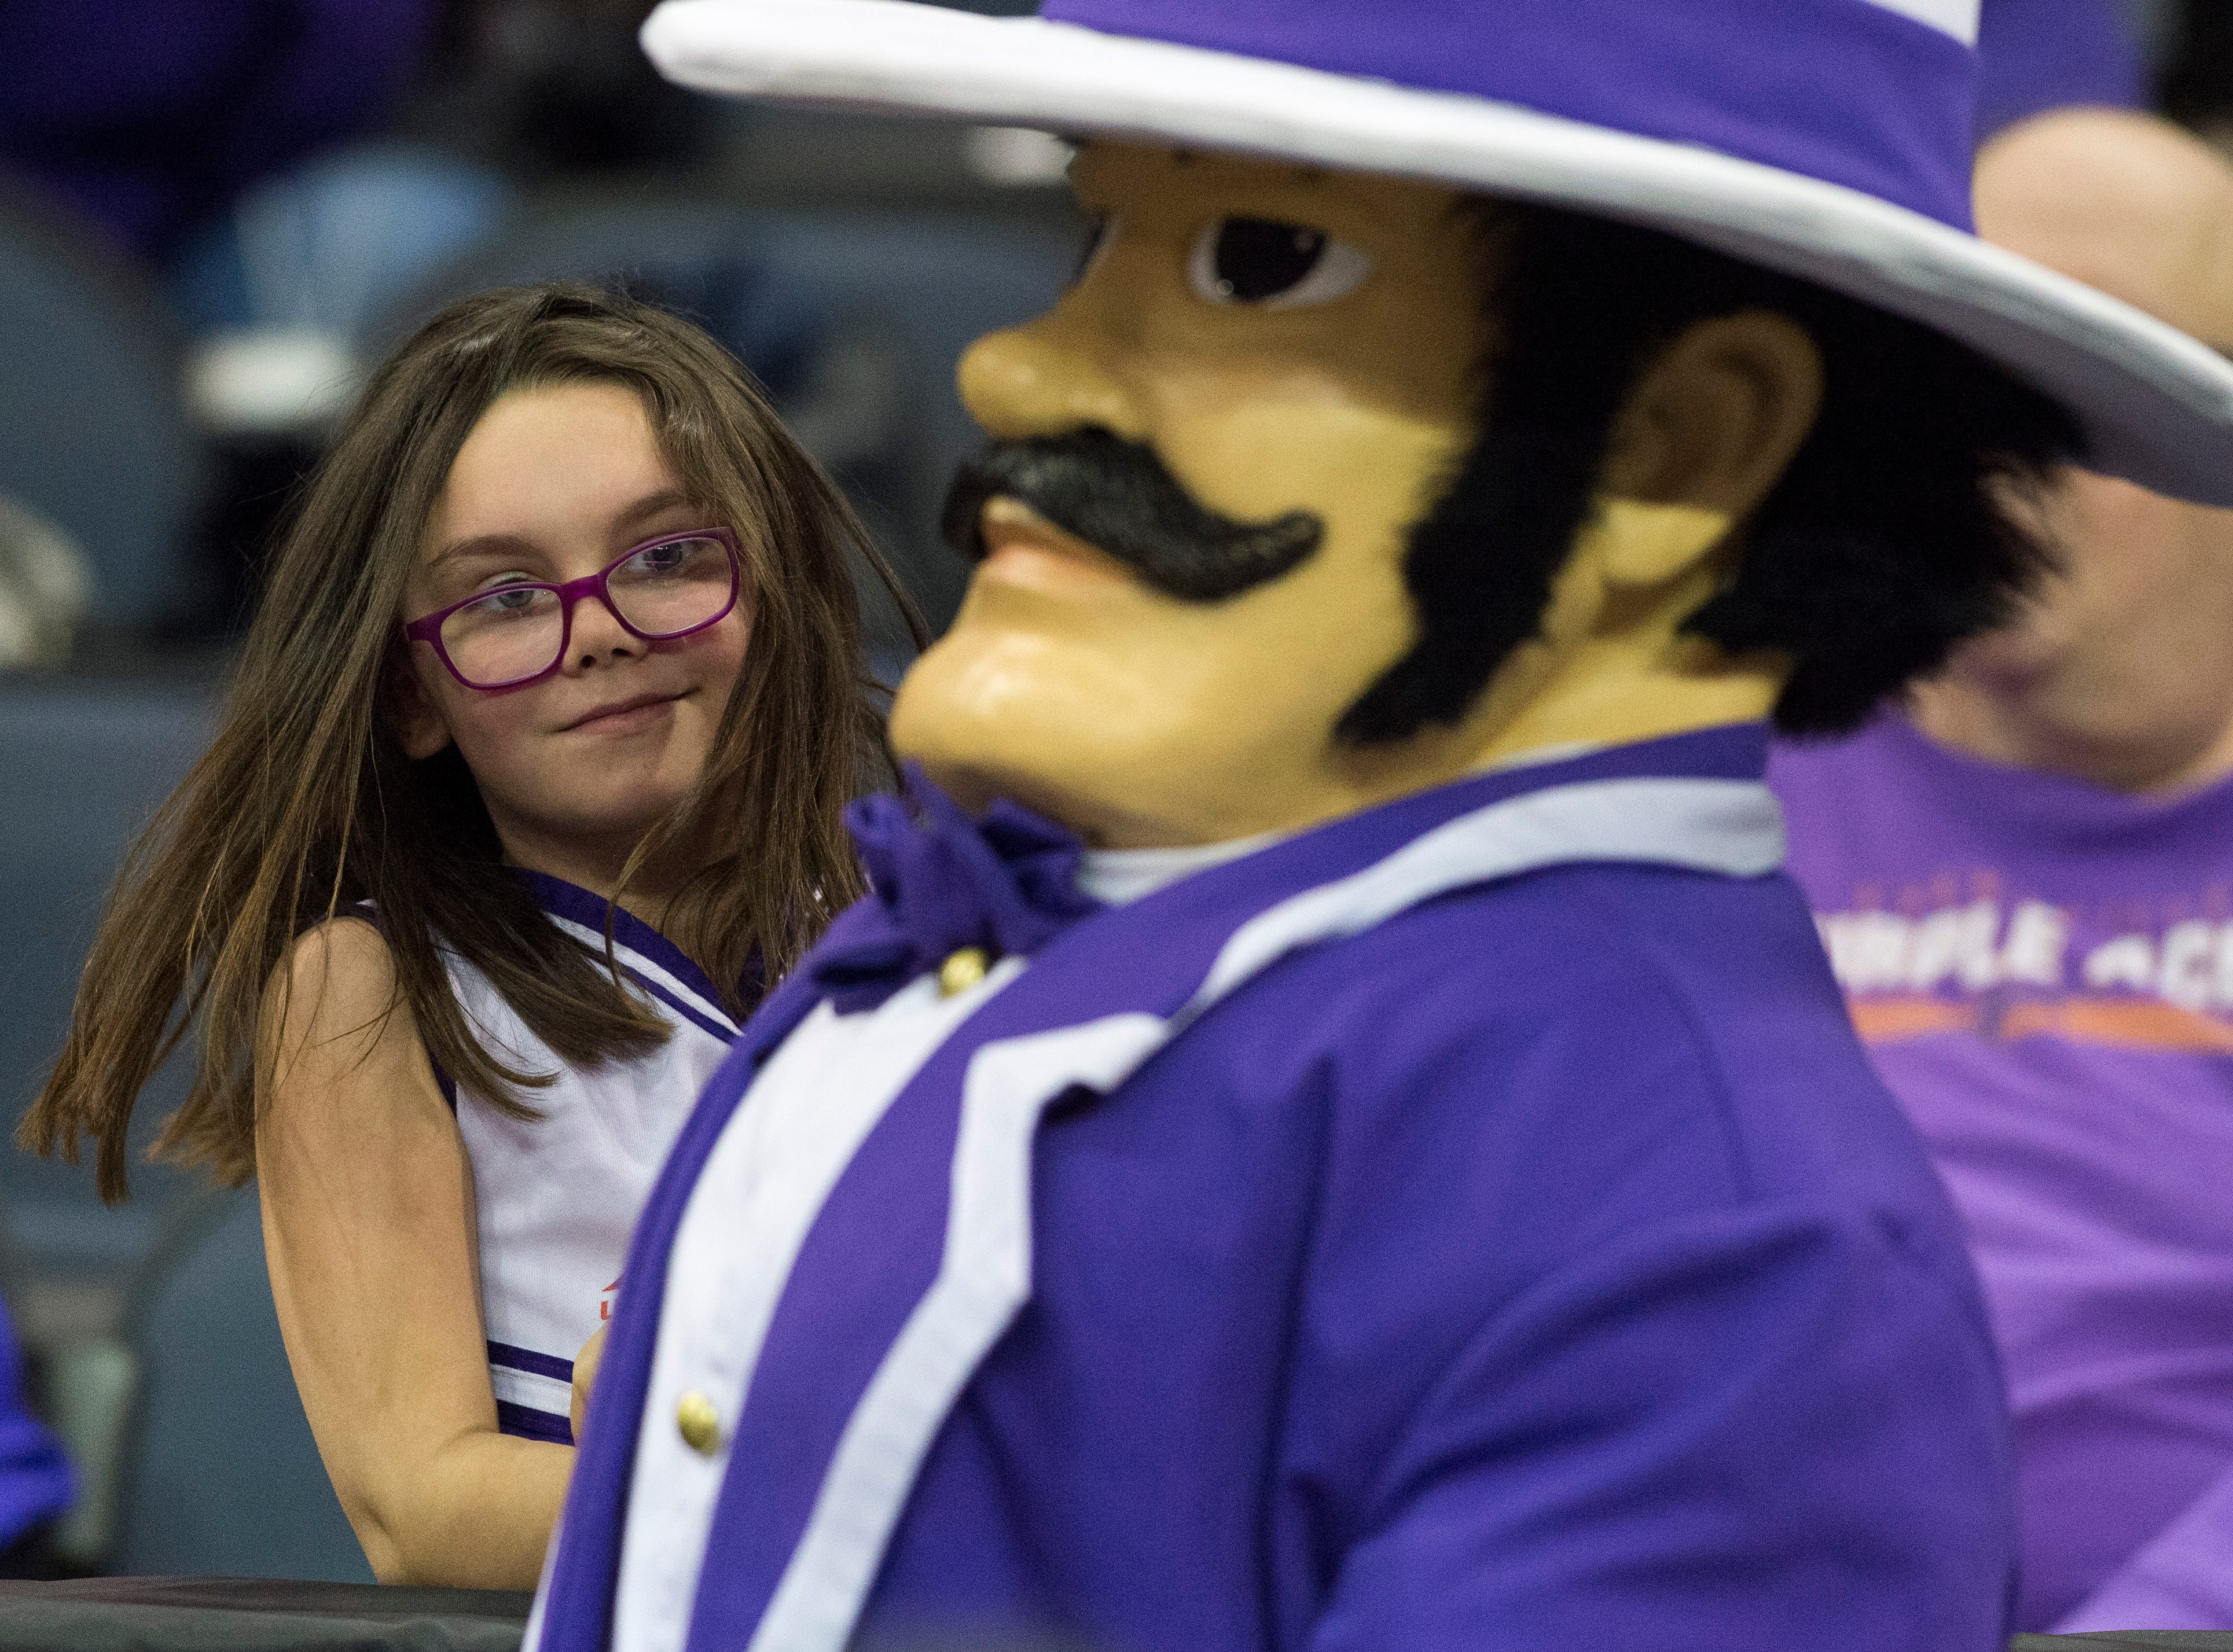 University of Evansville basketball fan Jasmine Bivin, 7, smiles as UE's mascot Ace Purple walks by during the UE vs Wyoming game at the Ford Center Wednesday, Nov. 28, 2018. UE won 86-76.